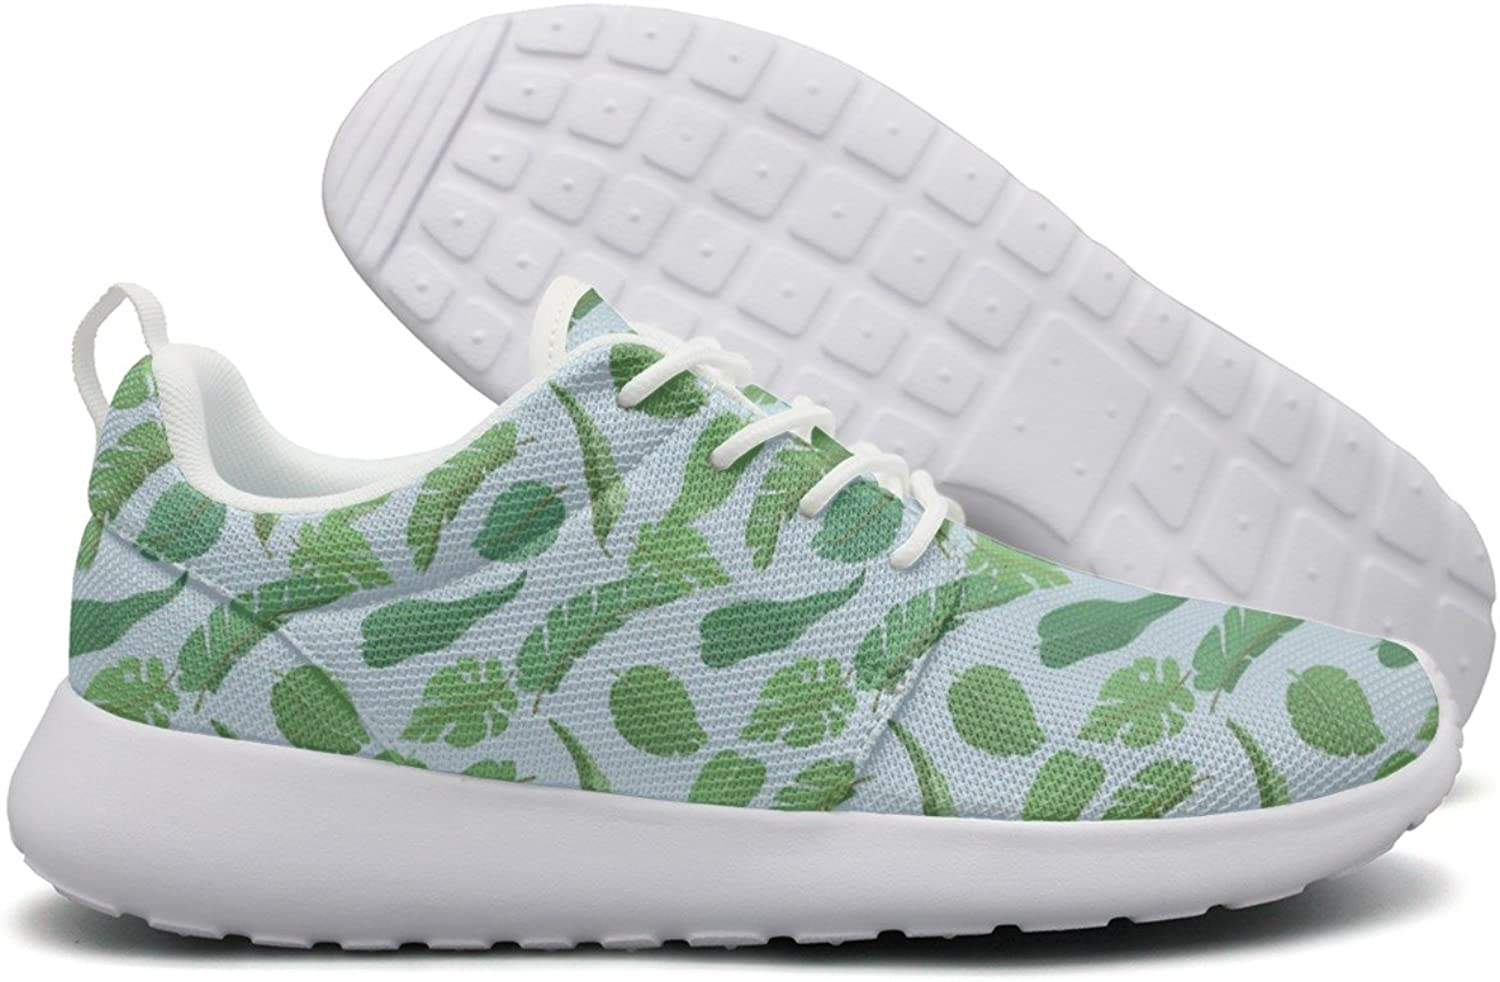 Tropical Plants Leaves Decor Women Neutral Design Running shoes Funny Comfortable